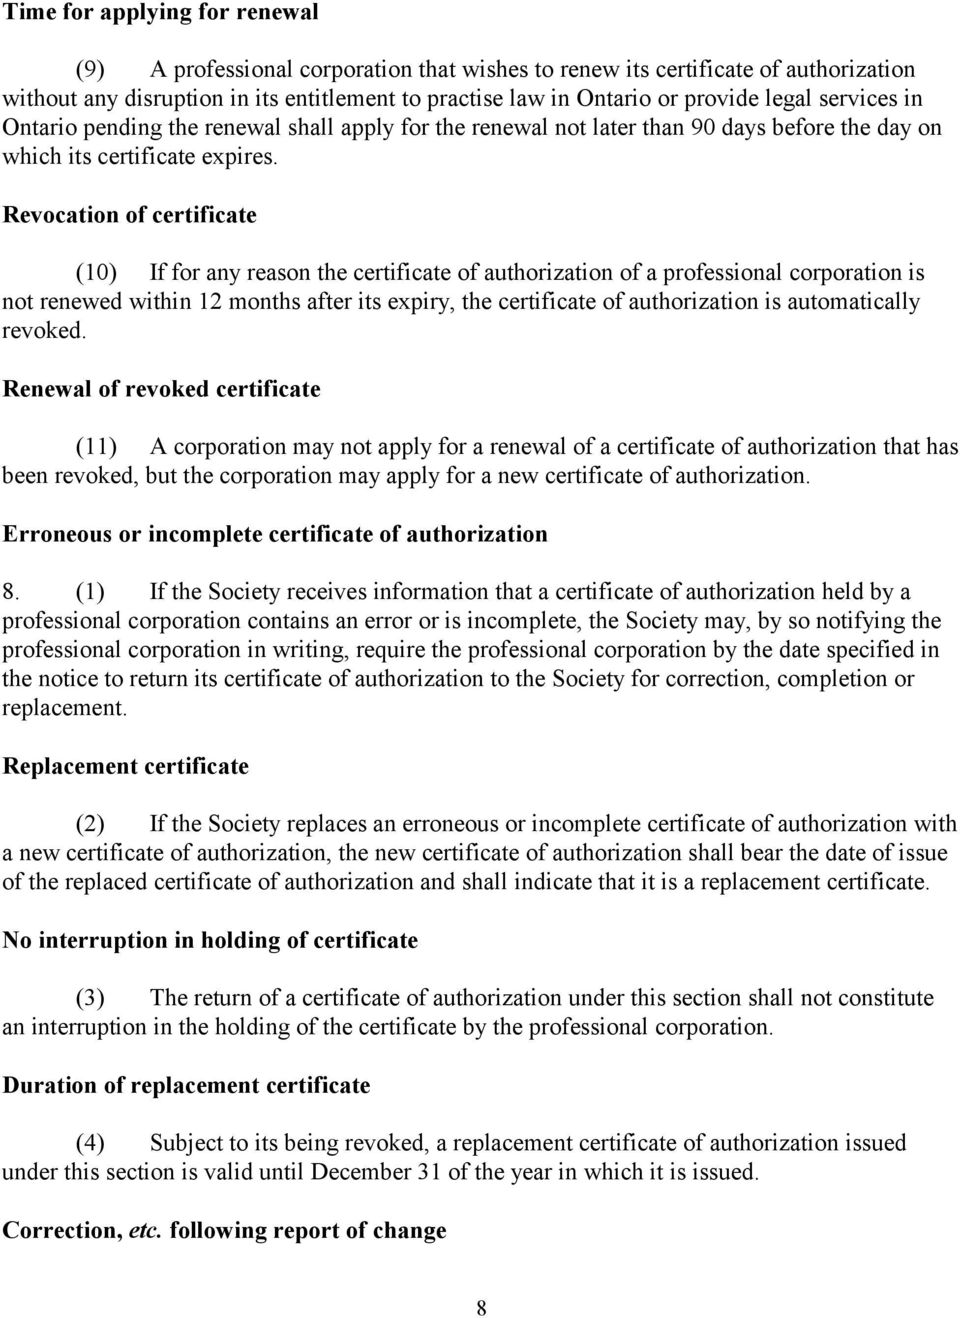 Revocation of certificate (10) If for any reason the certificate of authorization of a professional corporation is not renewed within 12 months after its expiry, the certificate of authorization is